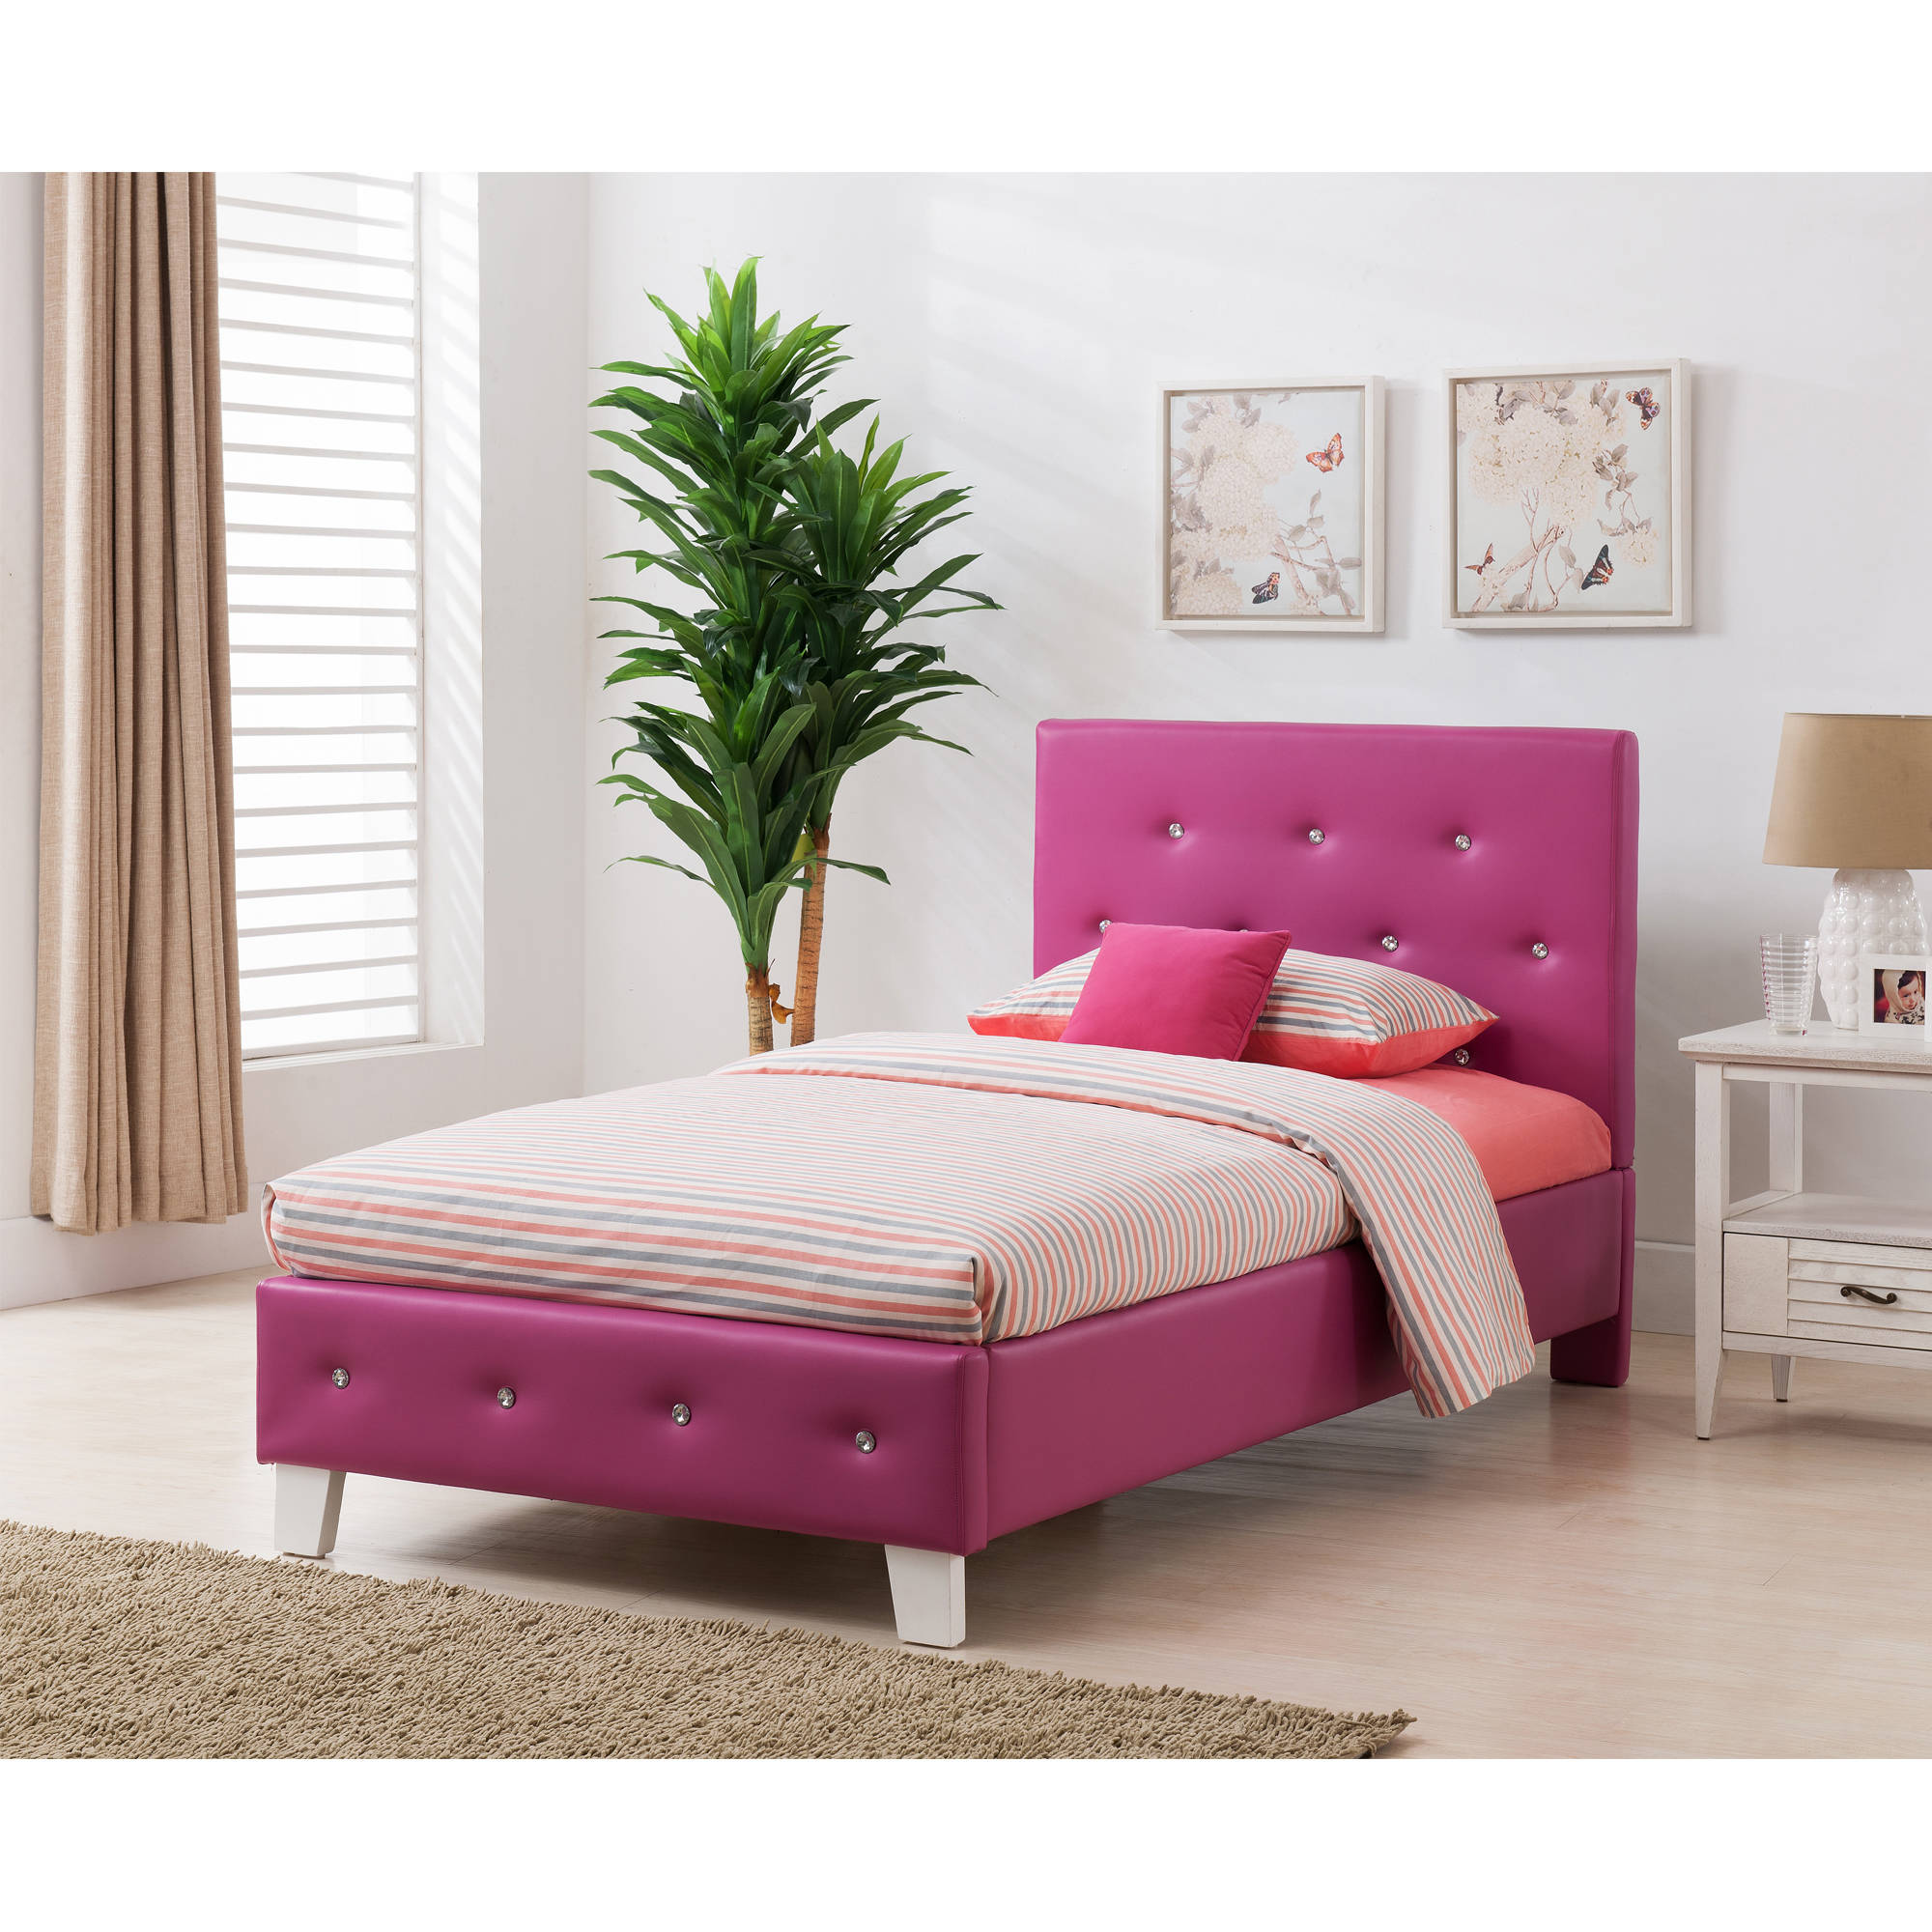 Boraam 95115 Kelsey Full Bed Set, Electric Pink